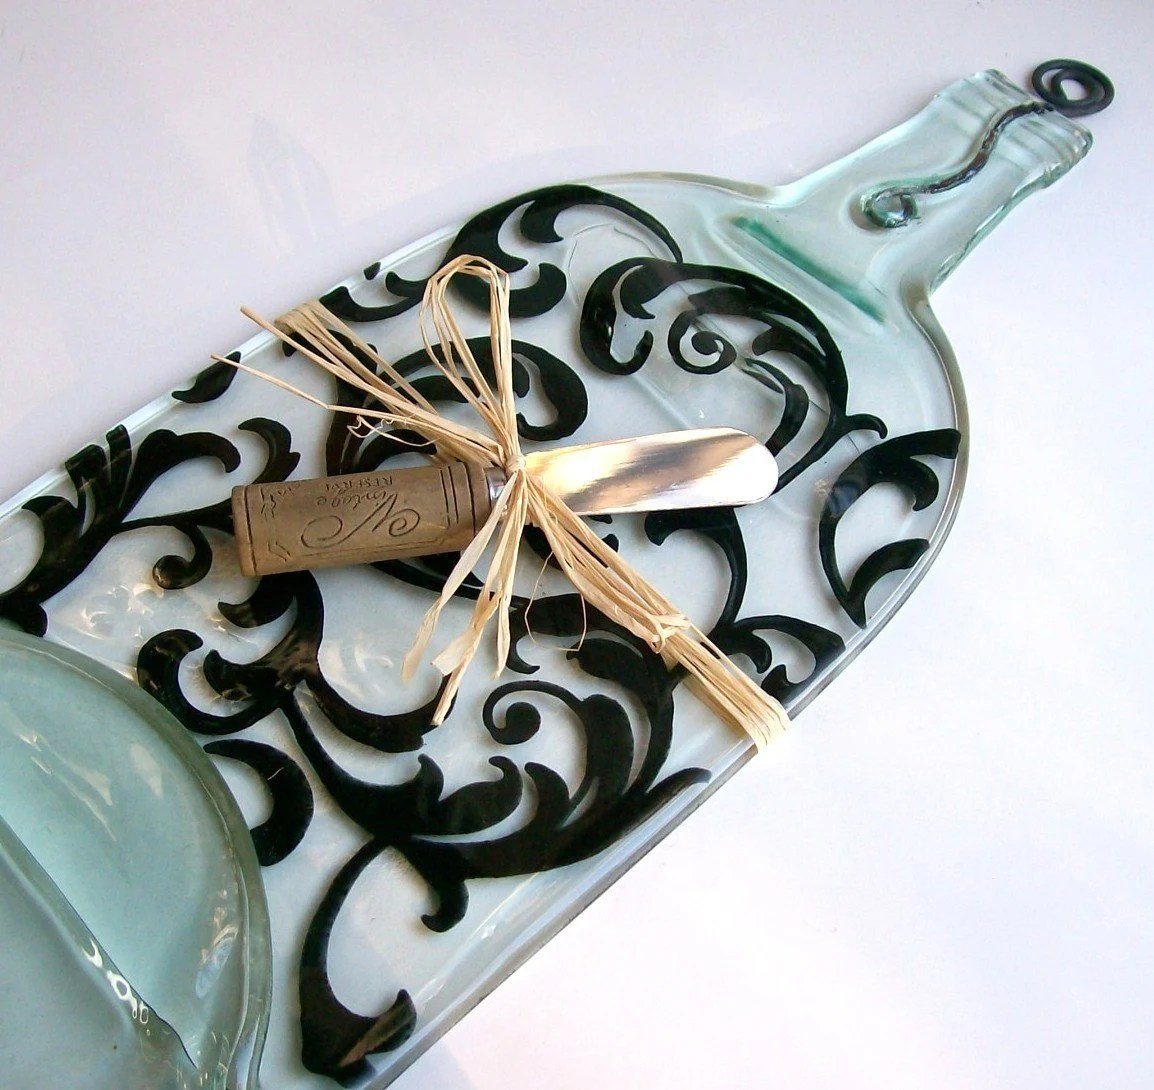 Recycled Wine Bottle Serving Tray/Cheese Board With Wine Cork Spreader (Lg Scroll Pattern)